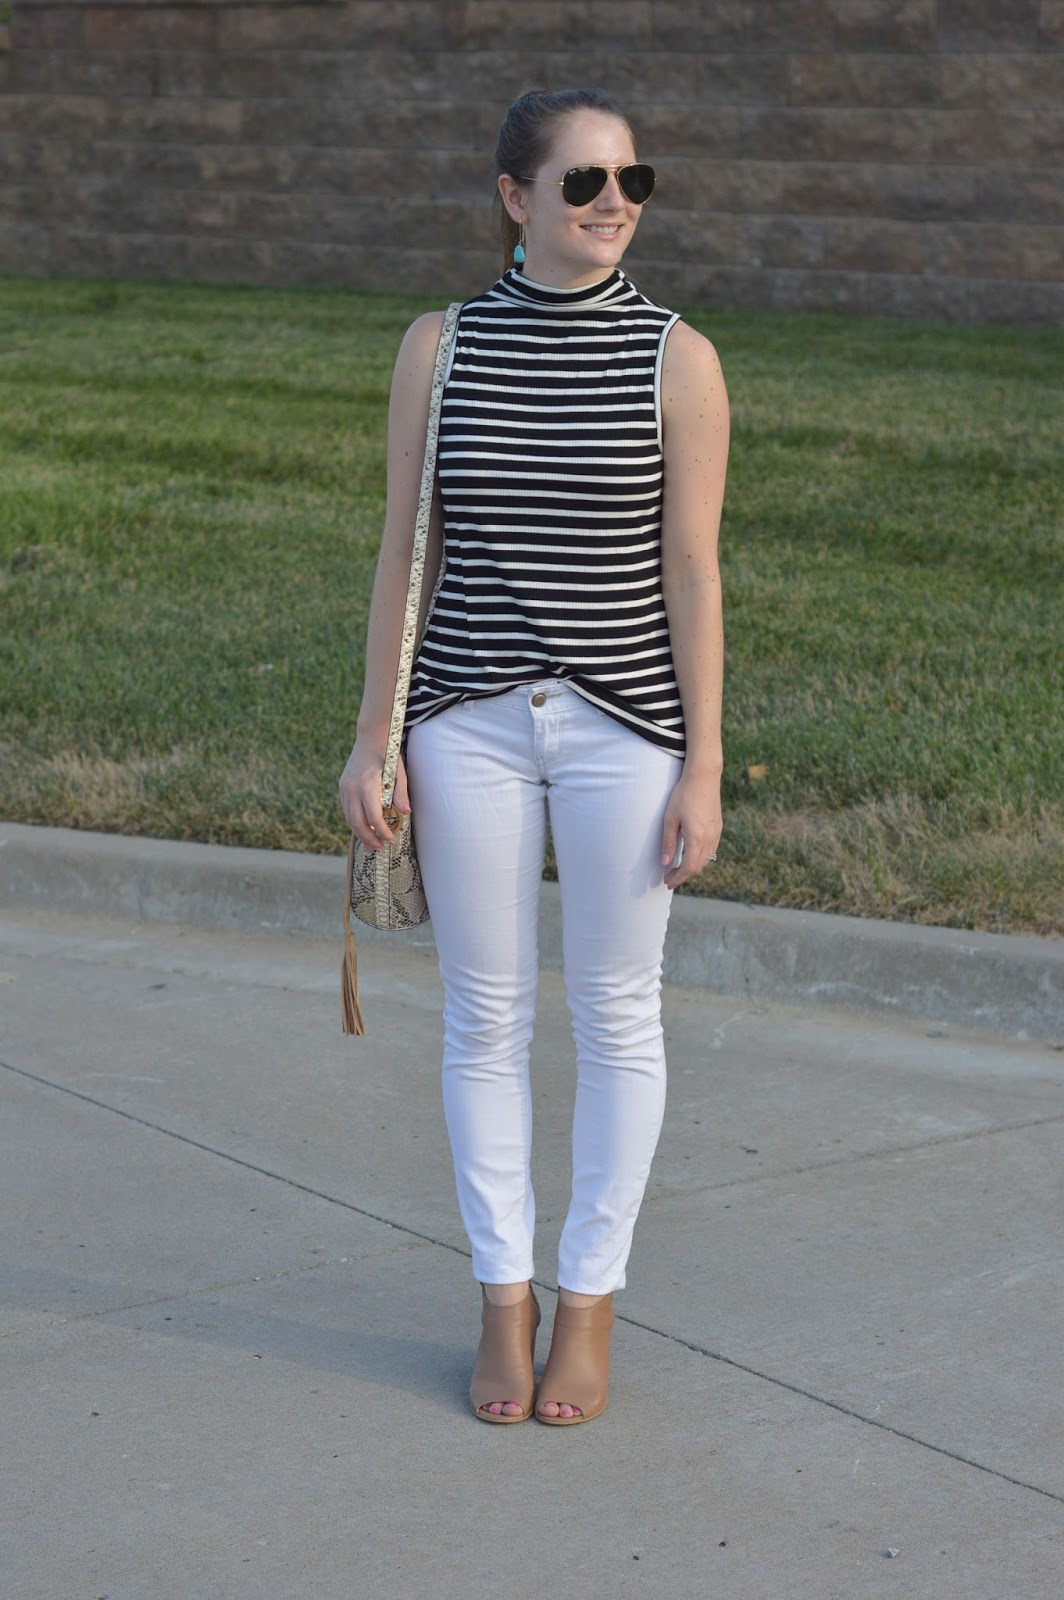 striped mock neck tank top | striped top with white skinny jeans | what to wear with white jeans | cute outfits to wear for the end of summer | early fall outfit ideas | pattern mixing how to